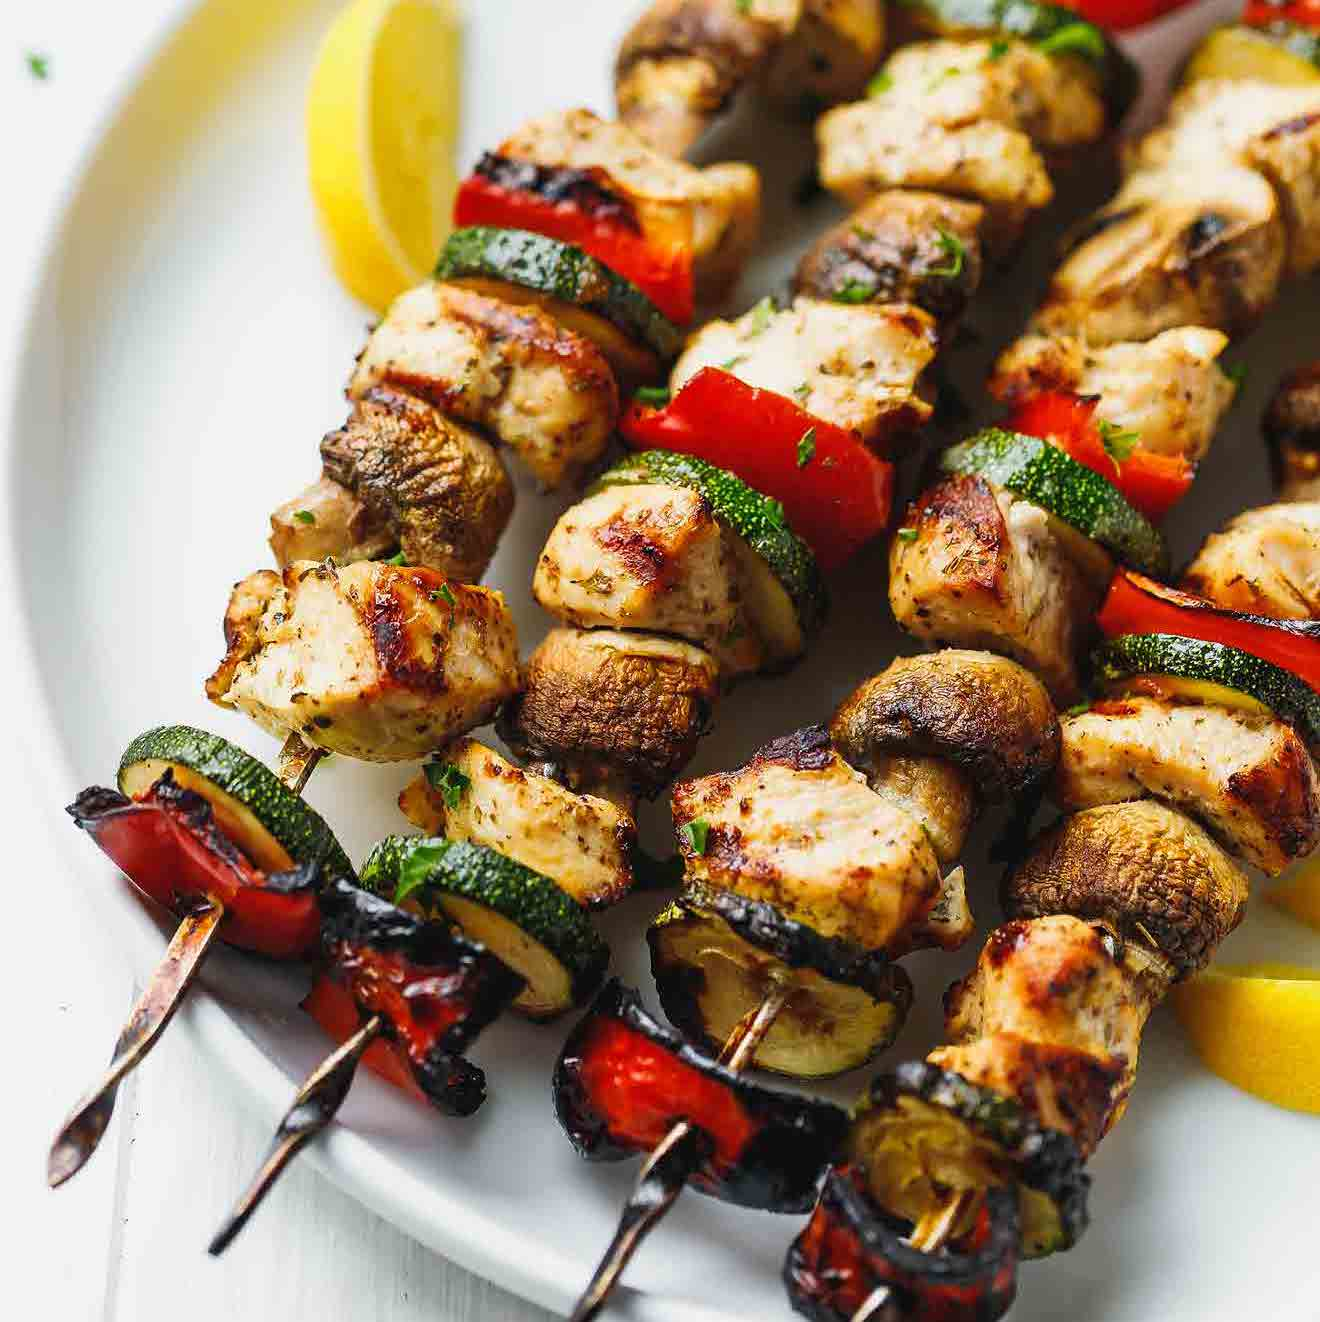 The recipe for snacks on nature: not a shish kebab single